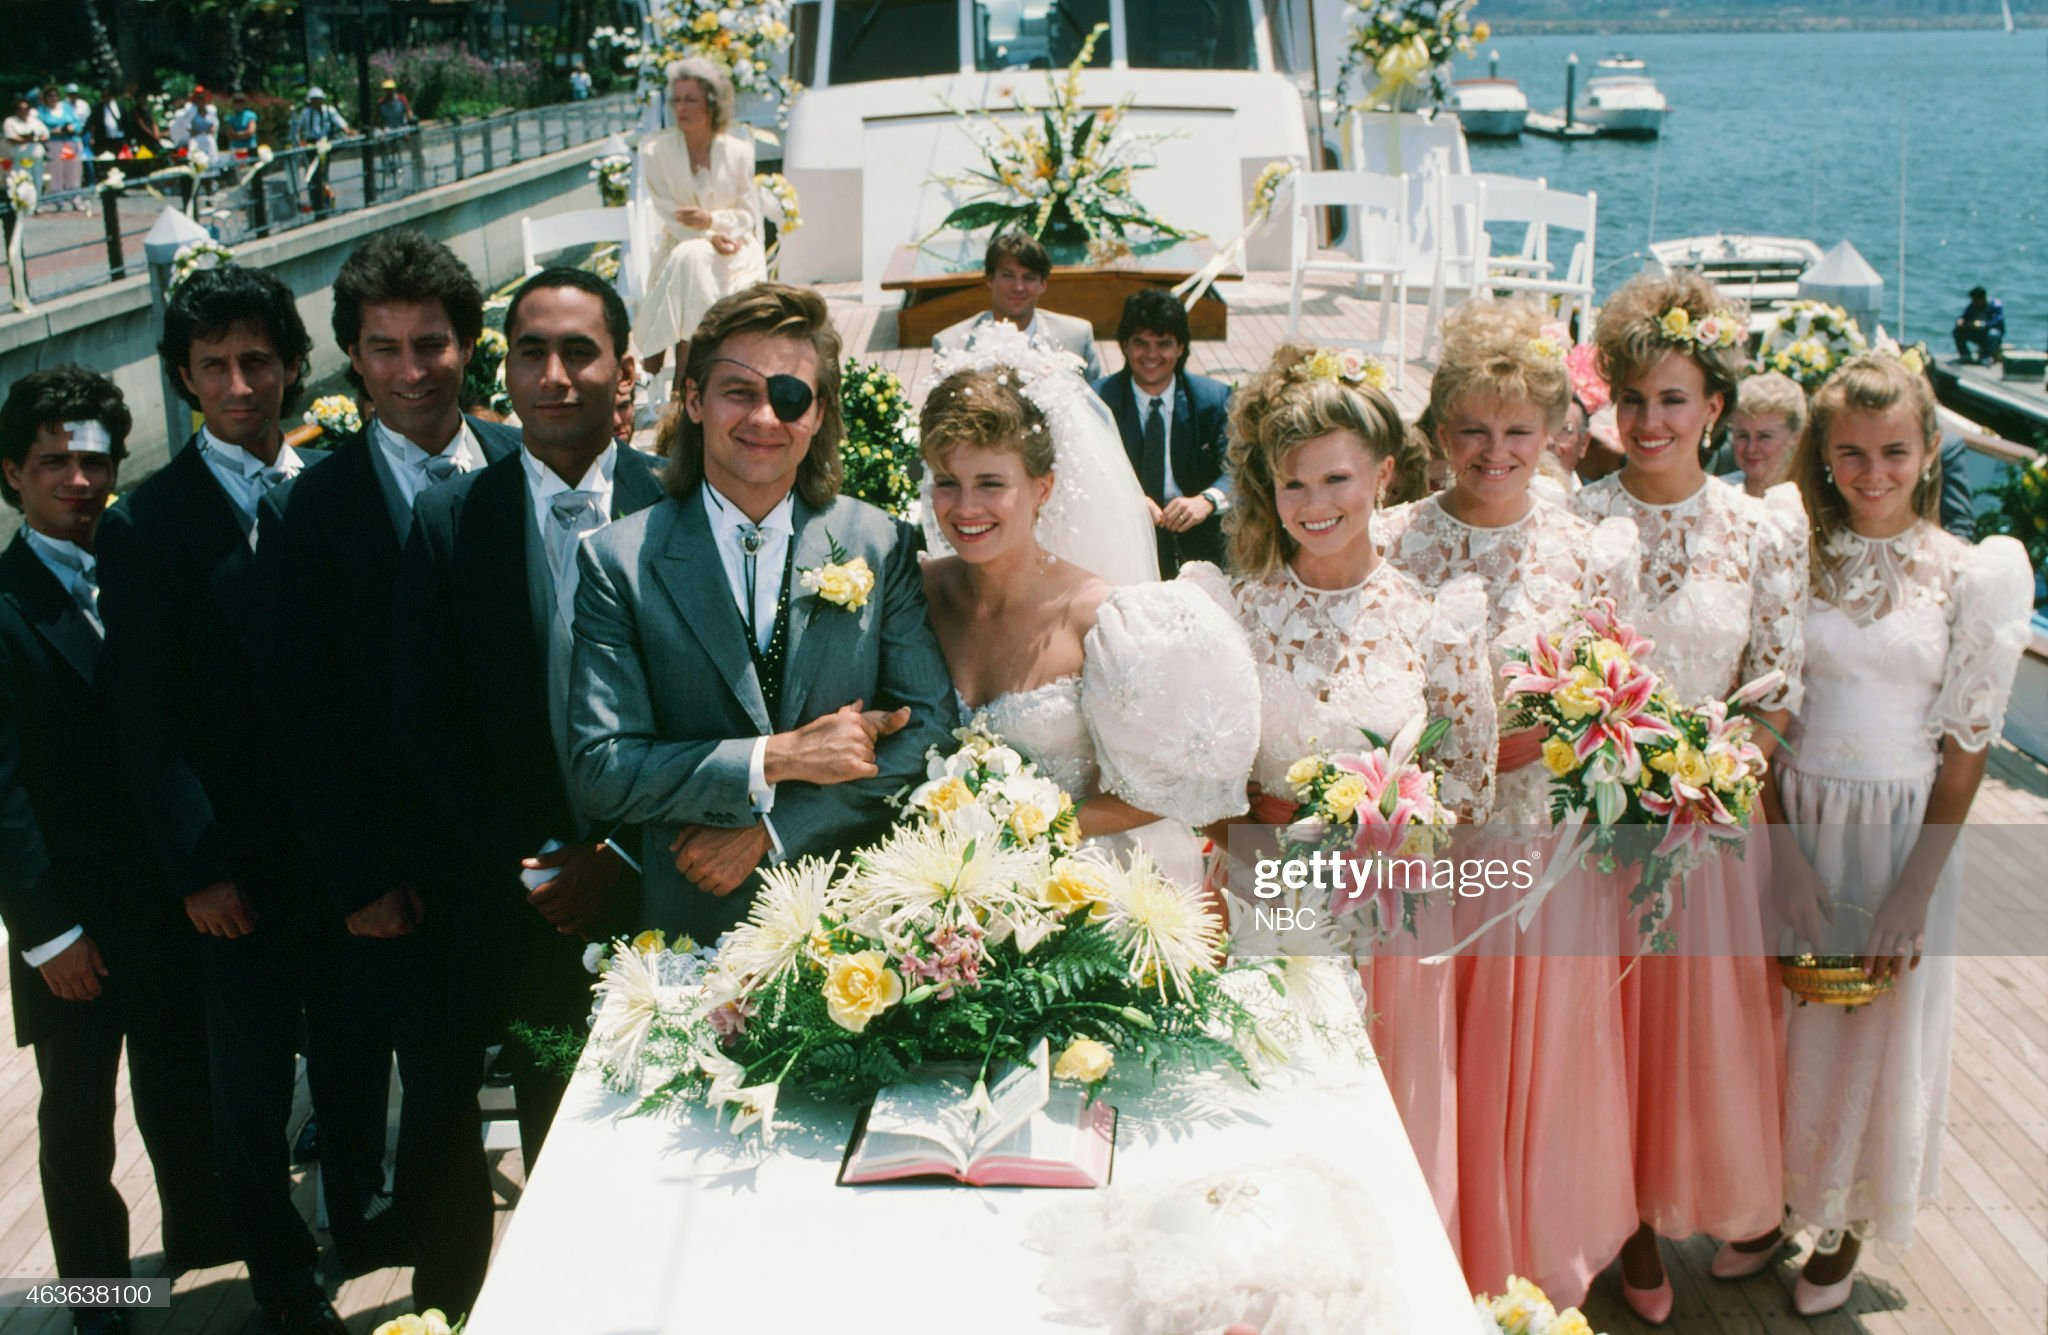 patch-johnson-kayla-brady-1st-wedding-pictured-billy-warlock-as-picture-id463638100